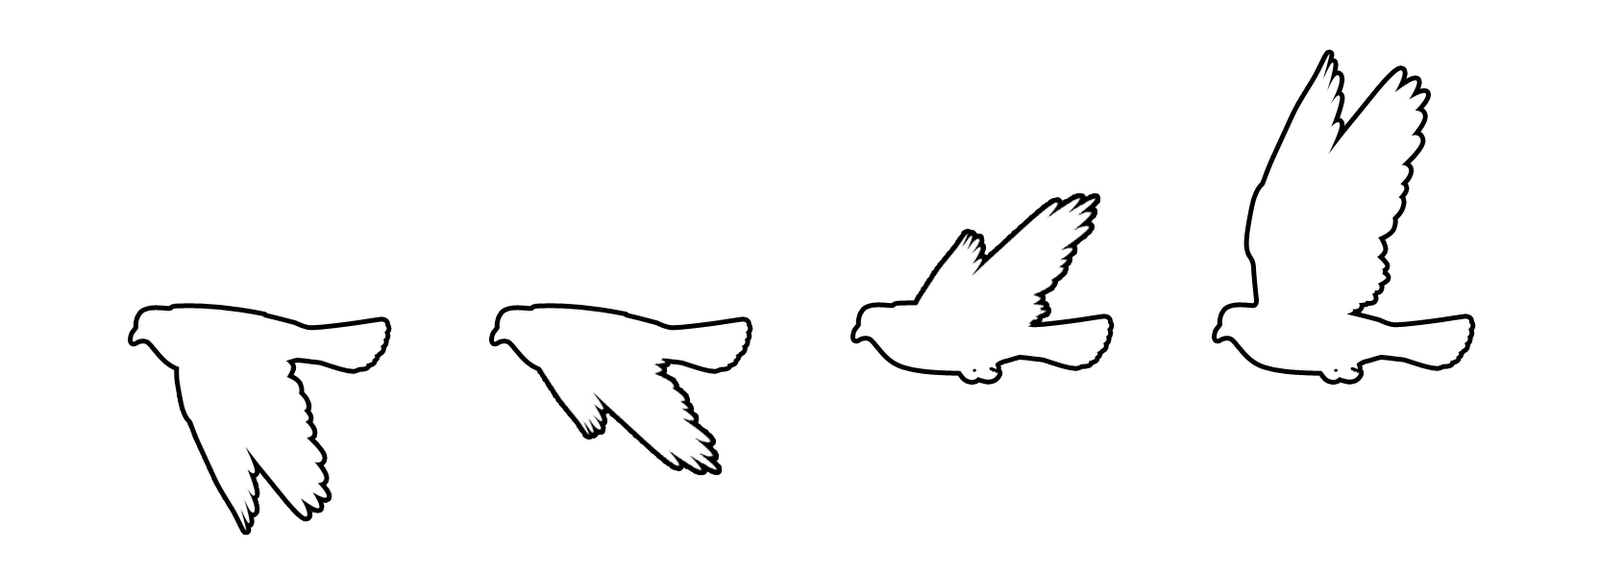 Dove clipart vector. Sequence free images at